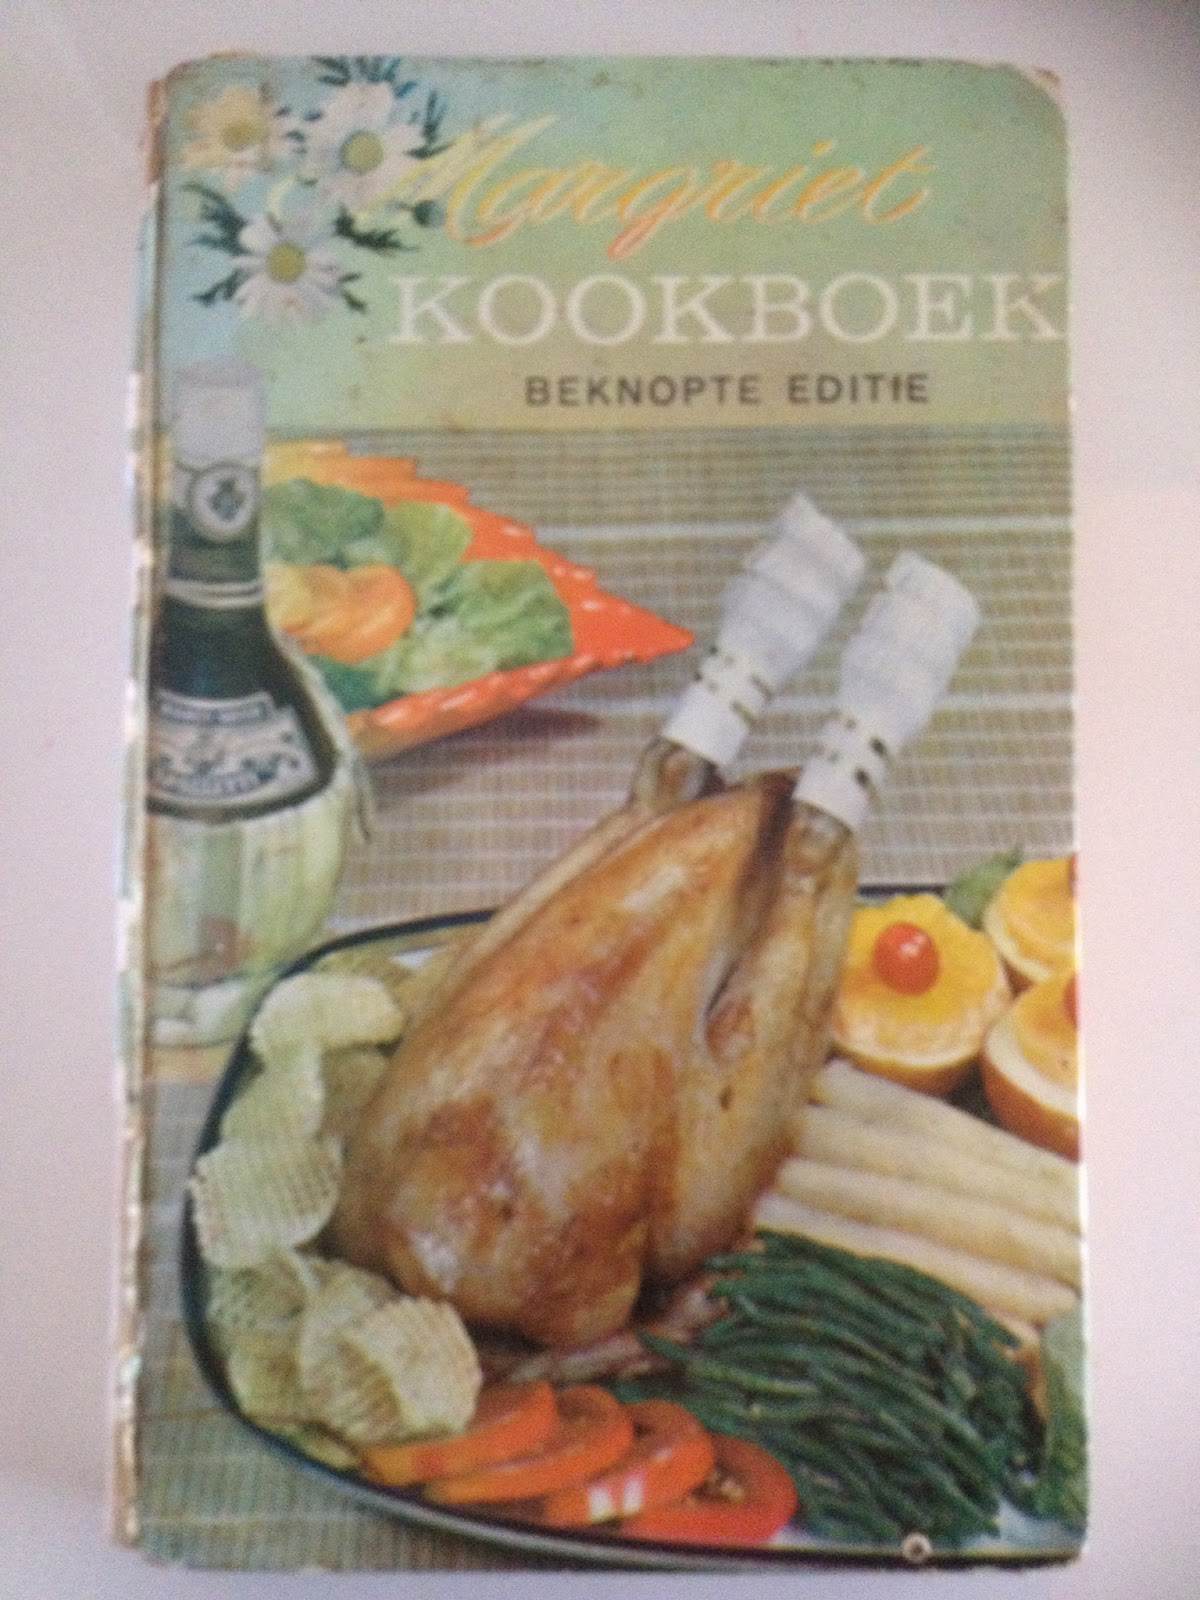 My happy kitchen leest: Margriet kookboek